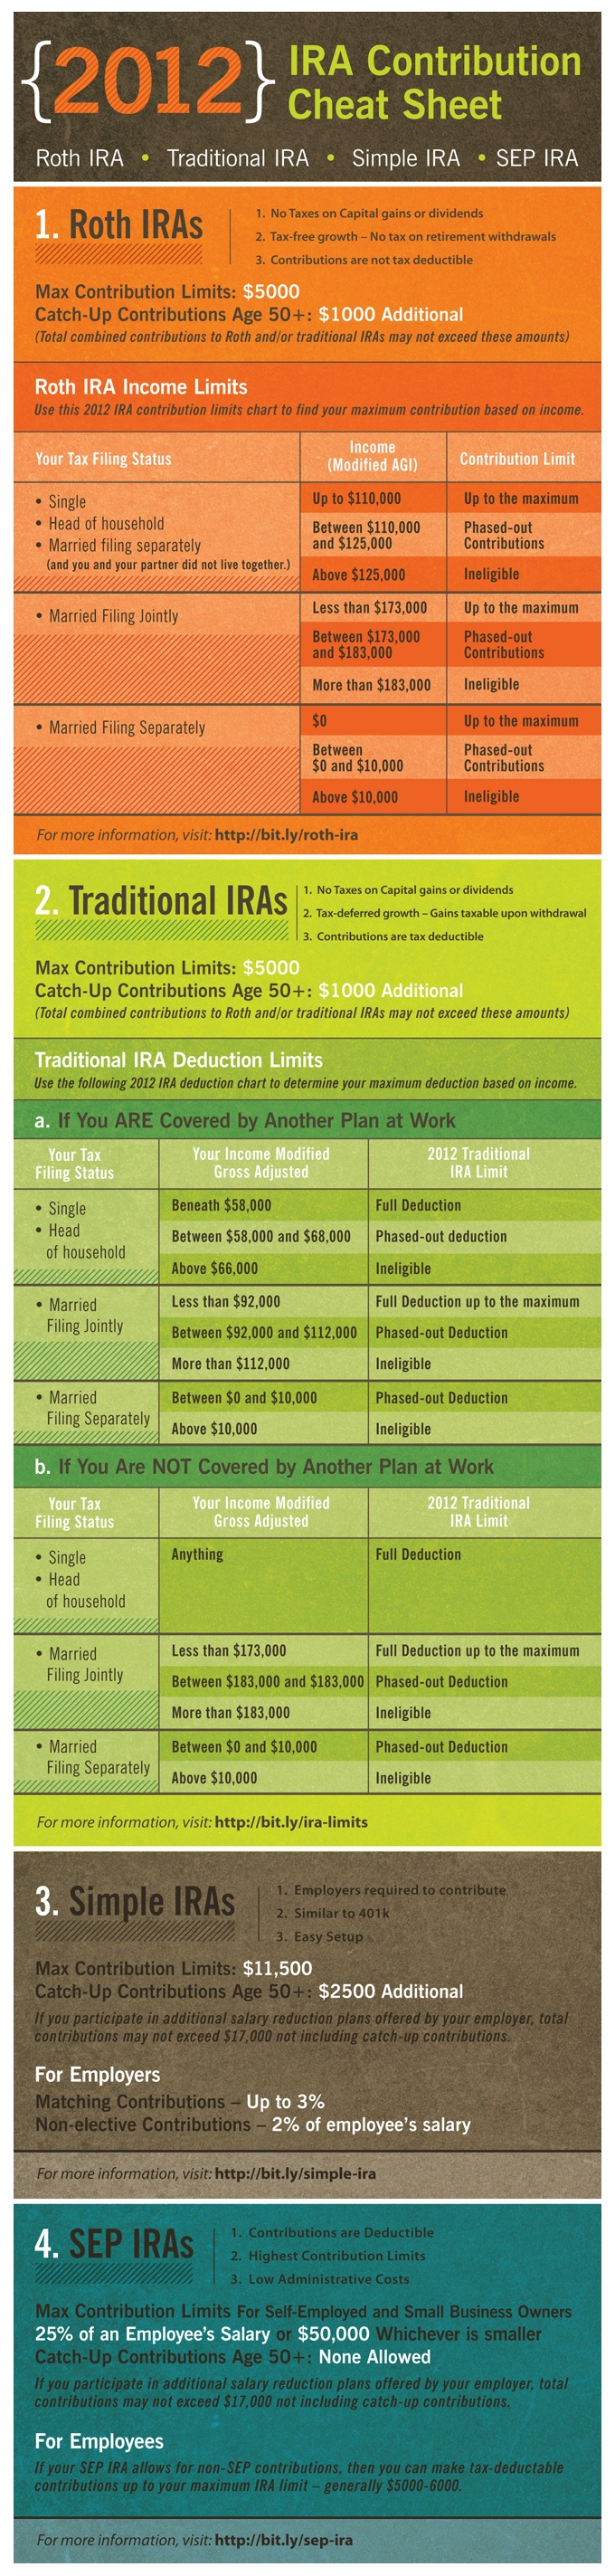 IRA Contribution Limits in 2012 - Life House Financial